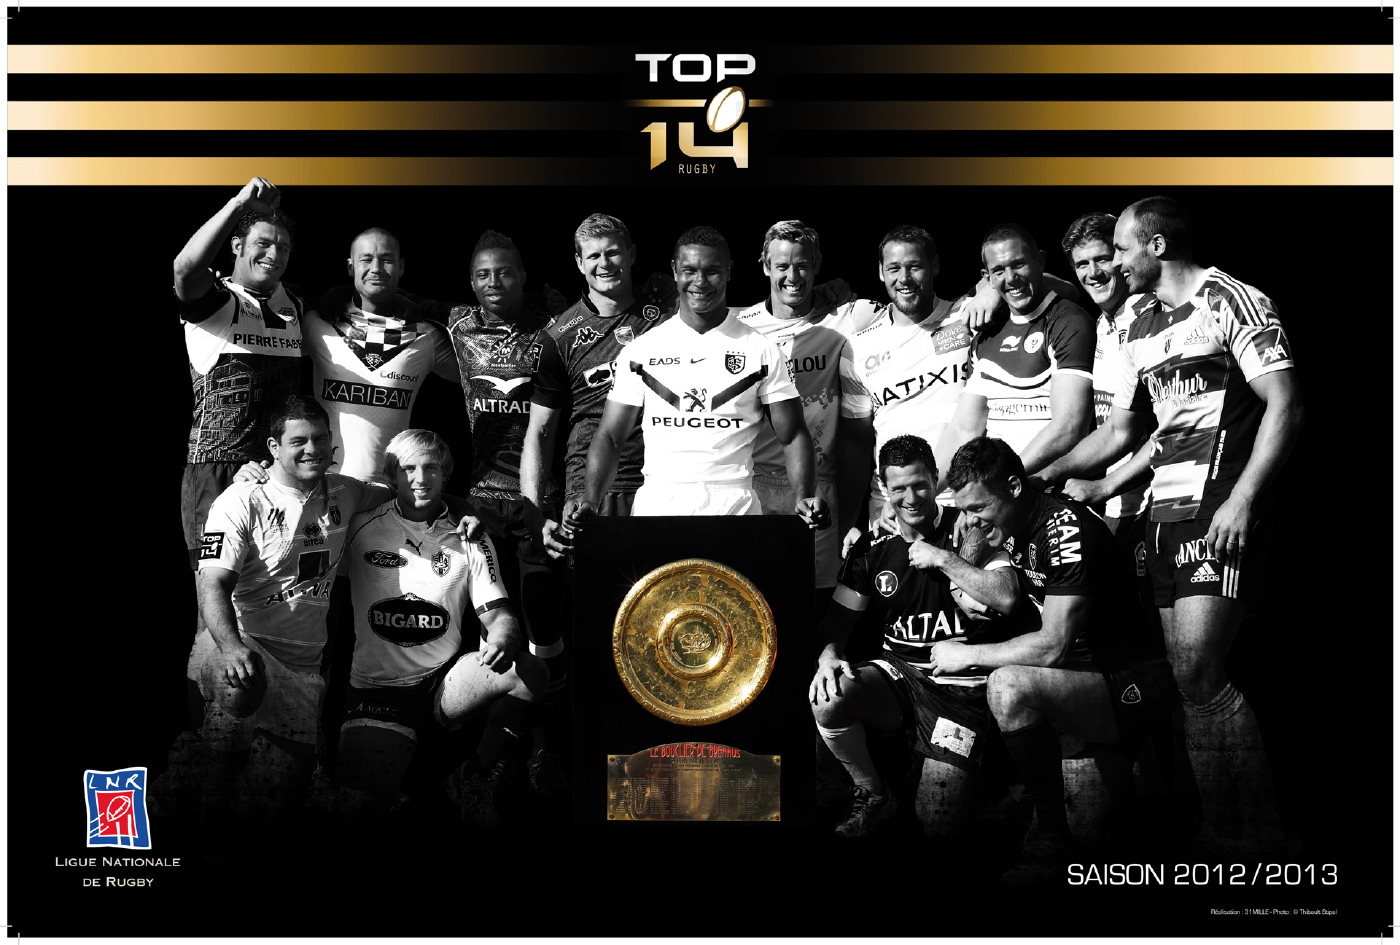 Thibault Stipal - Photographe - TOP 14 Ligue Nationale de Rugby  - 1